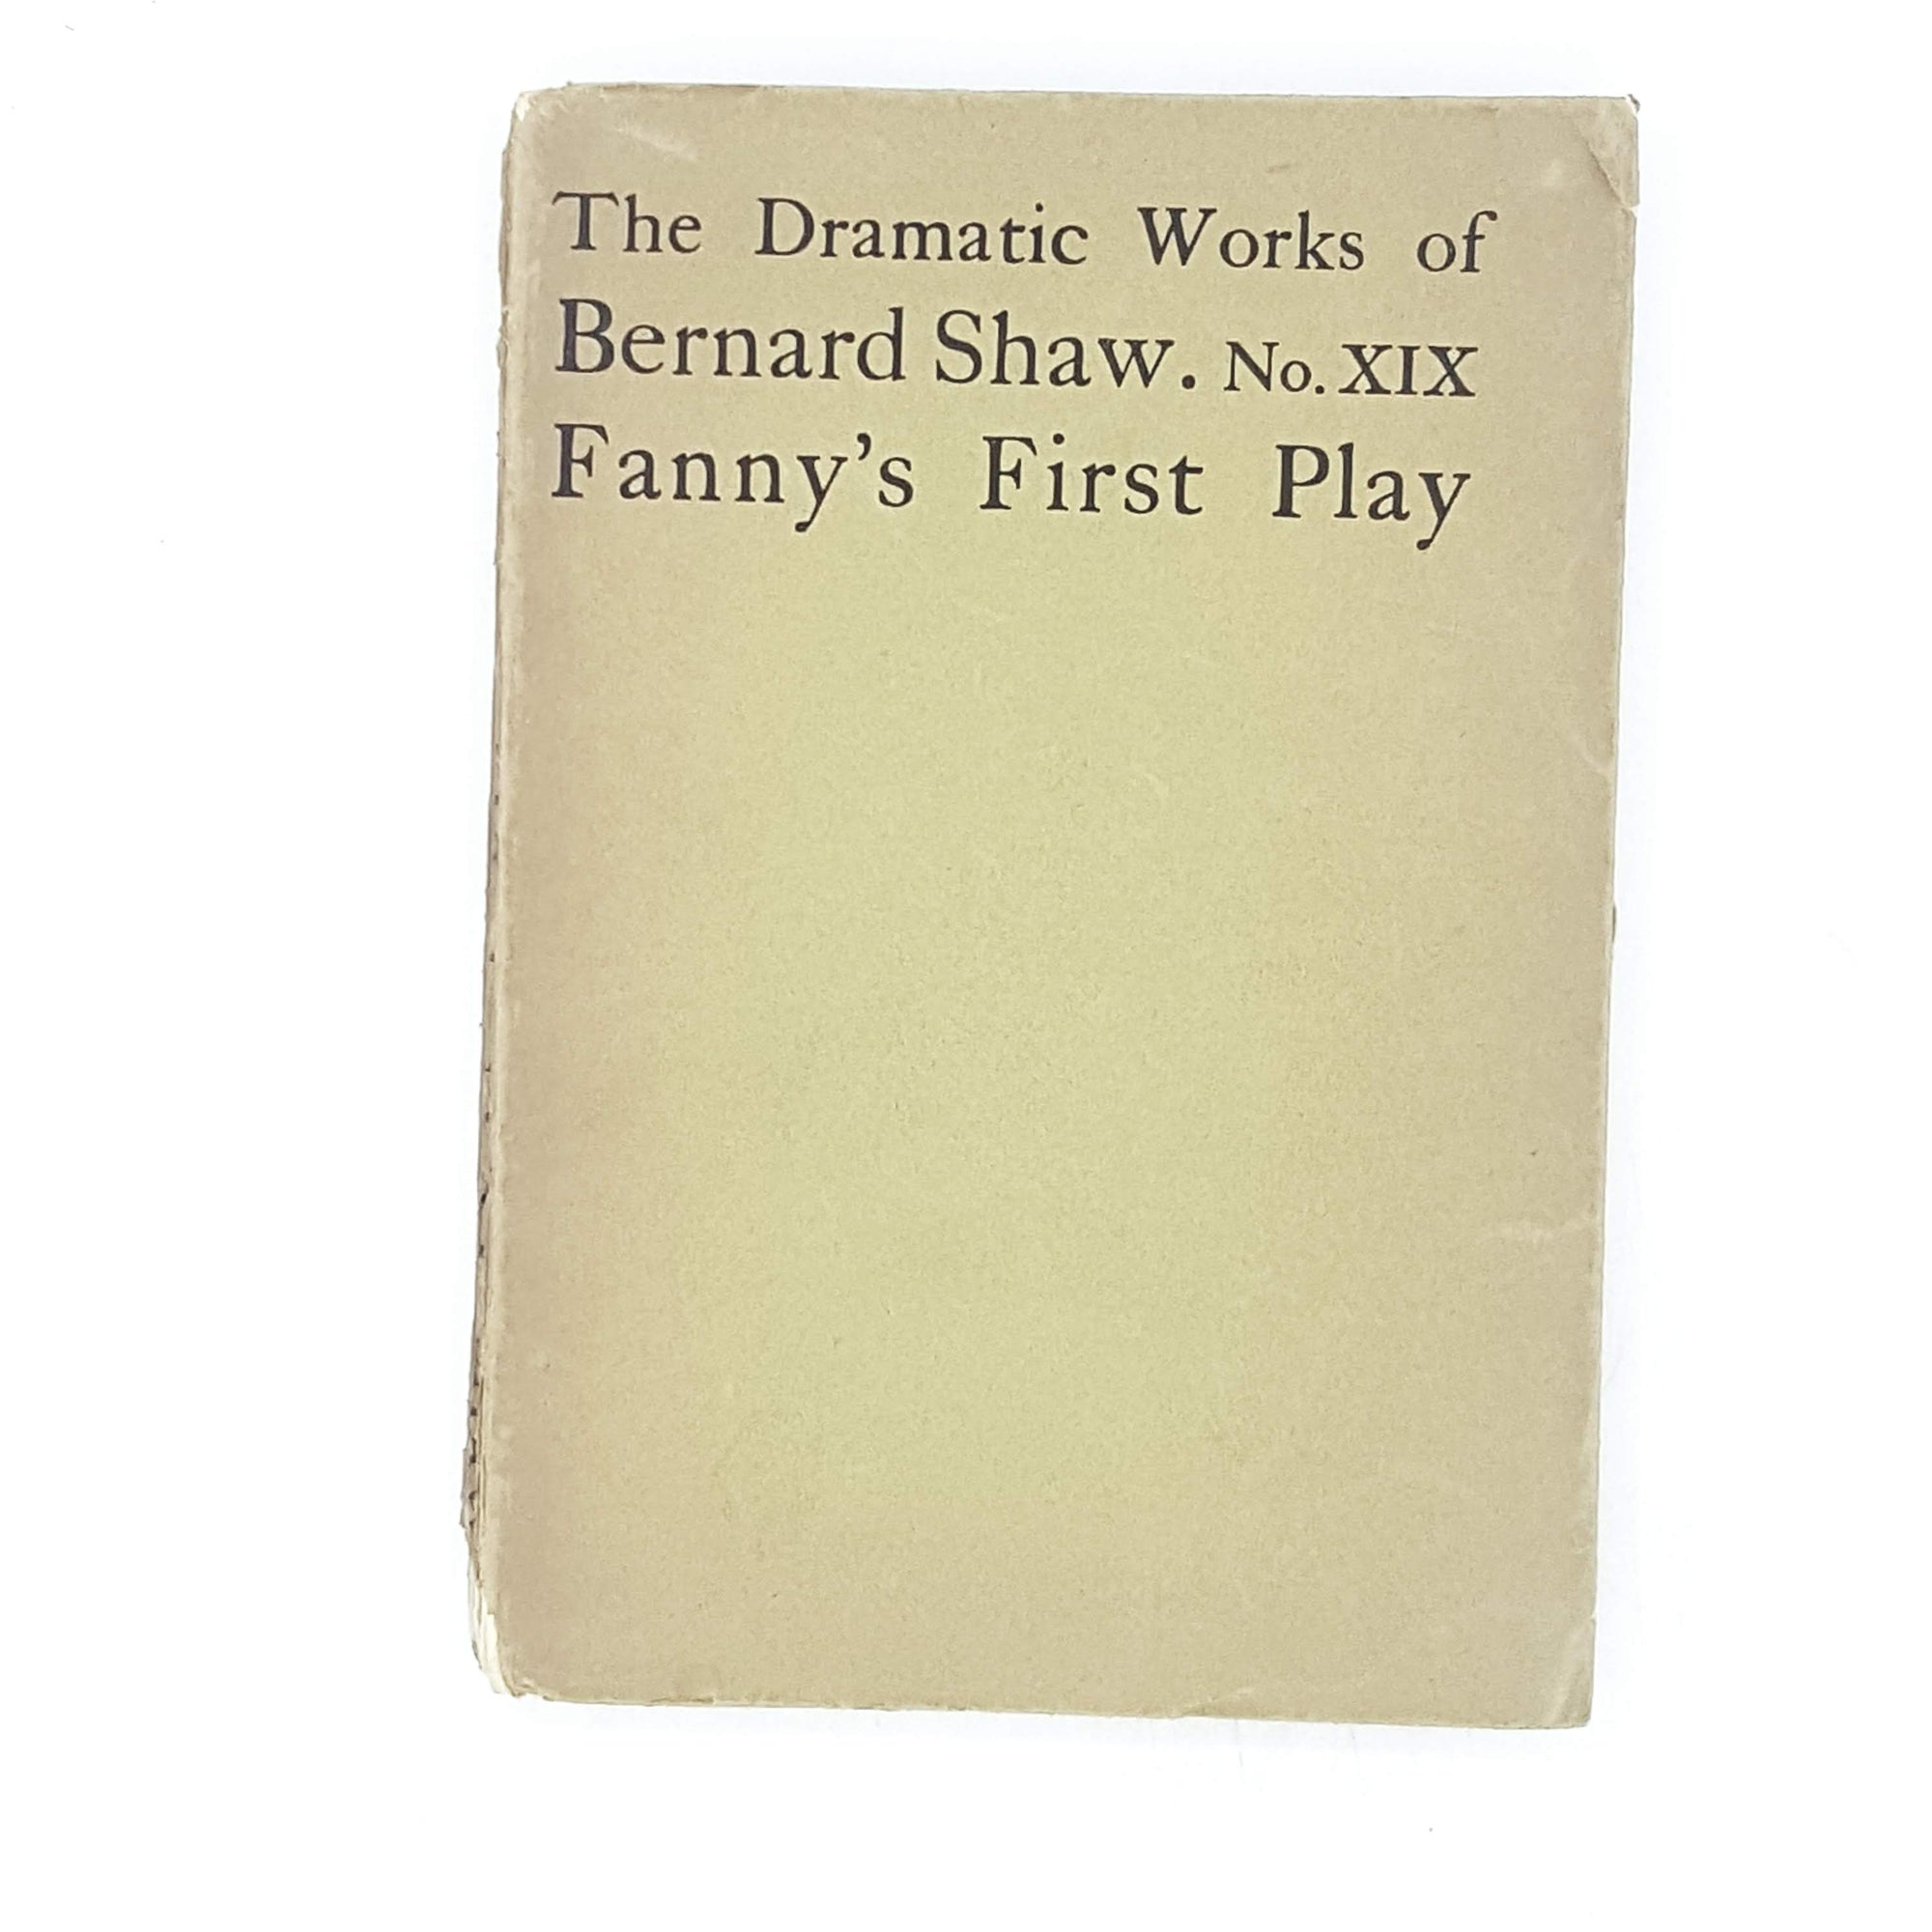 Fanny's First Play by Bernard Shaw 1927